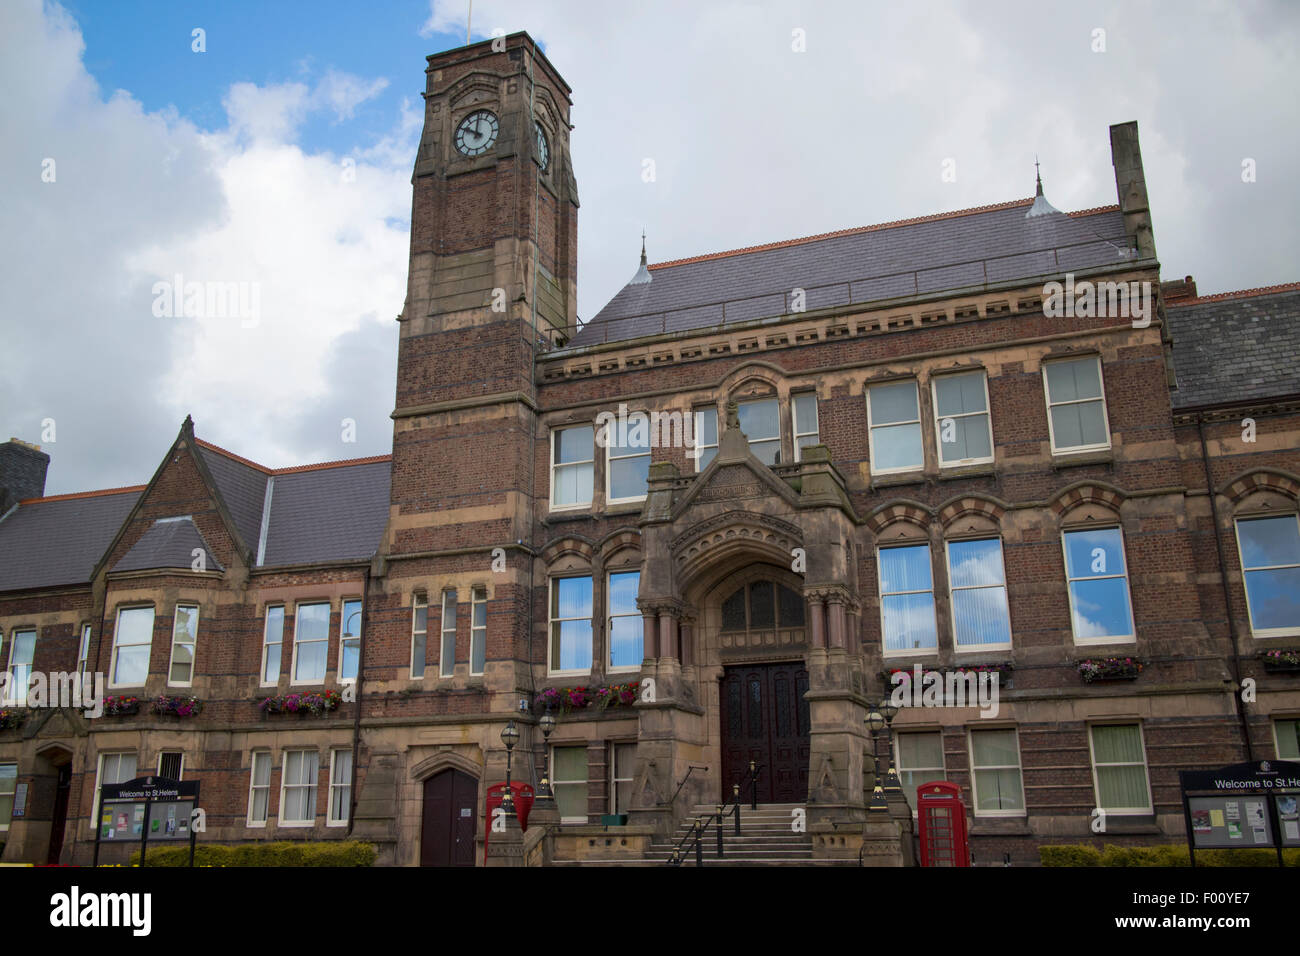 st helens town hall uk - Stock Image